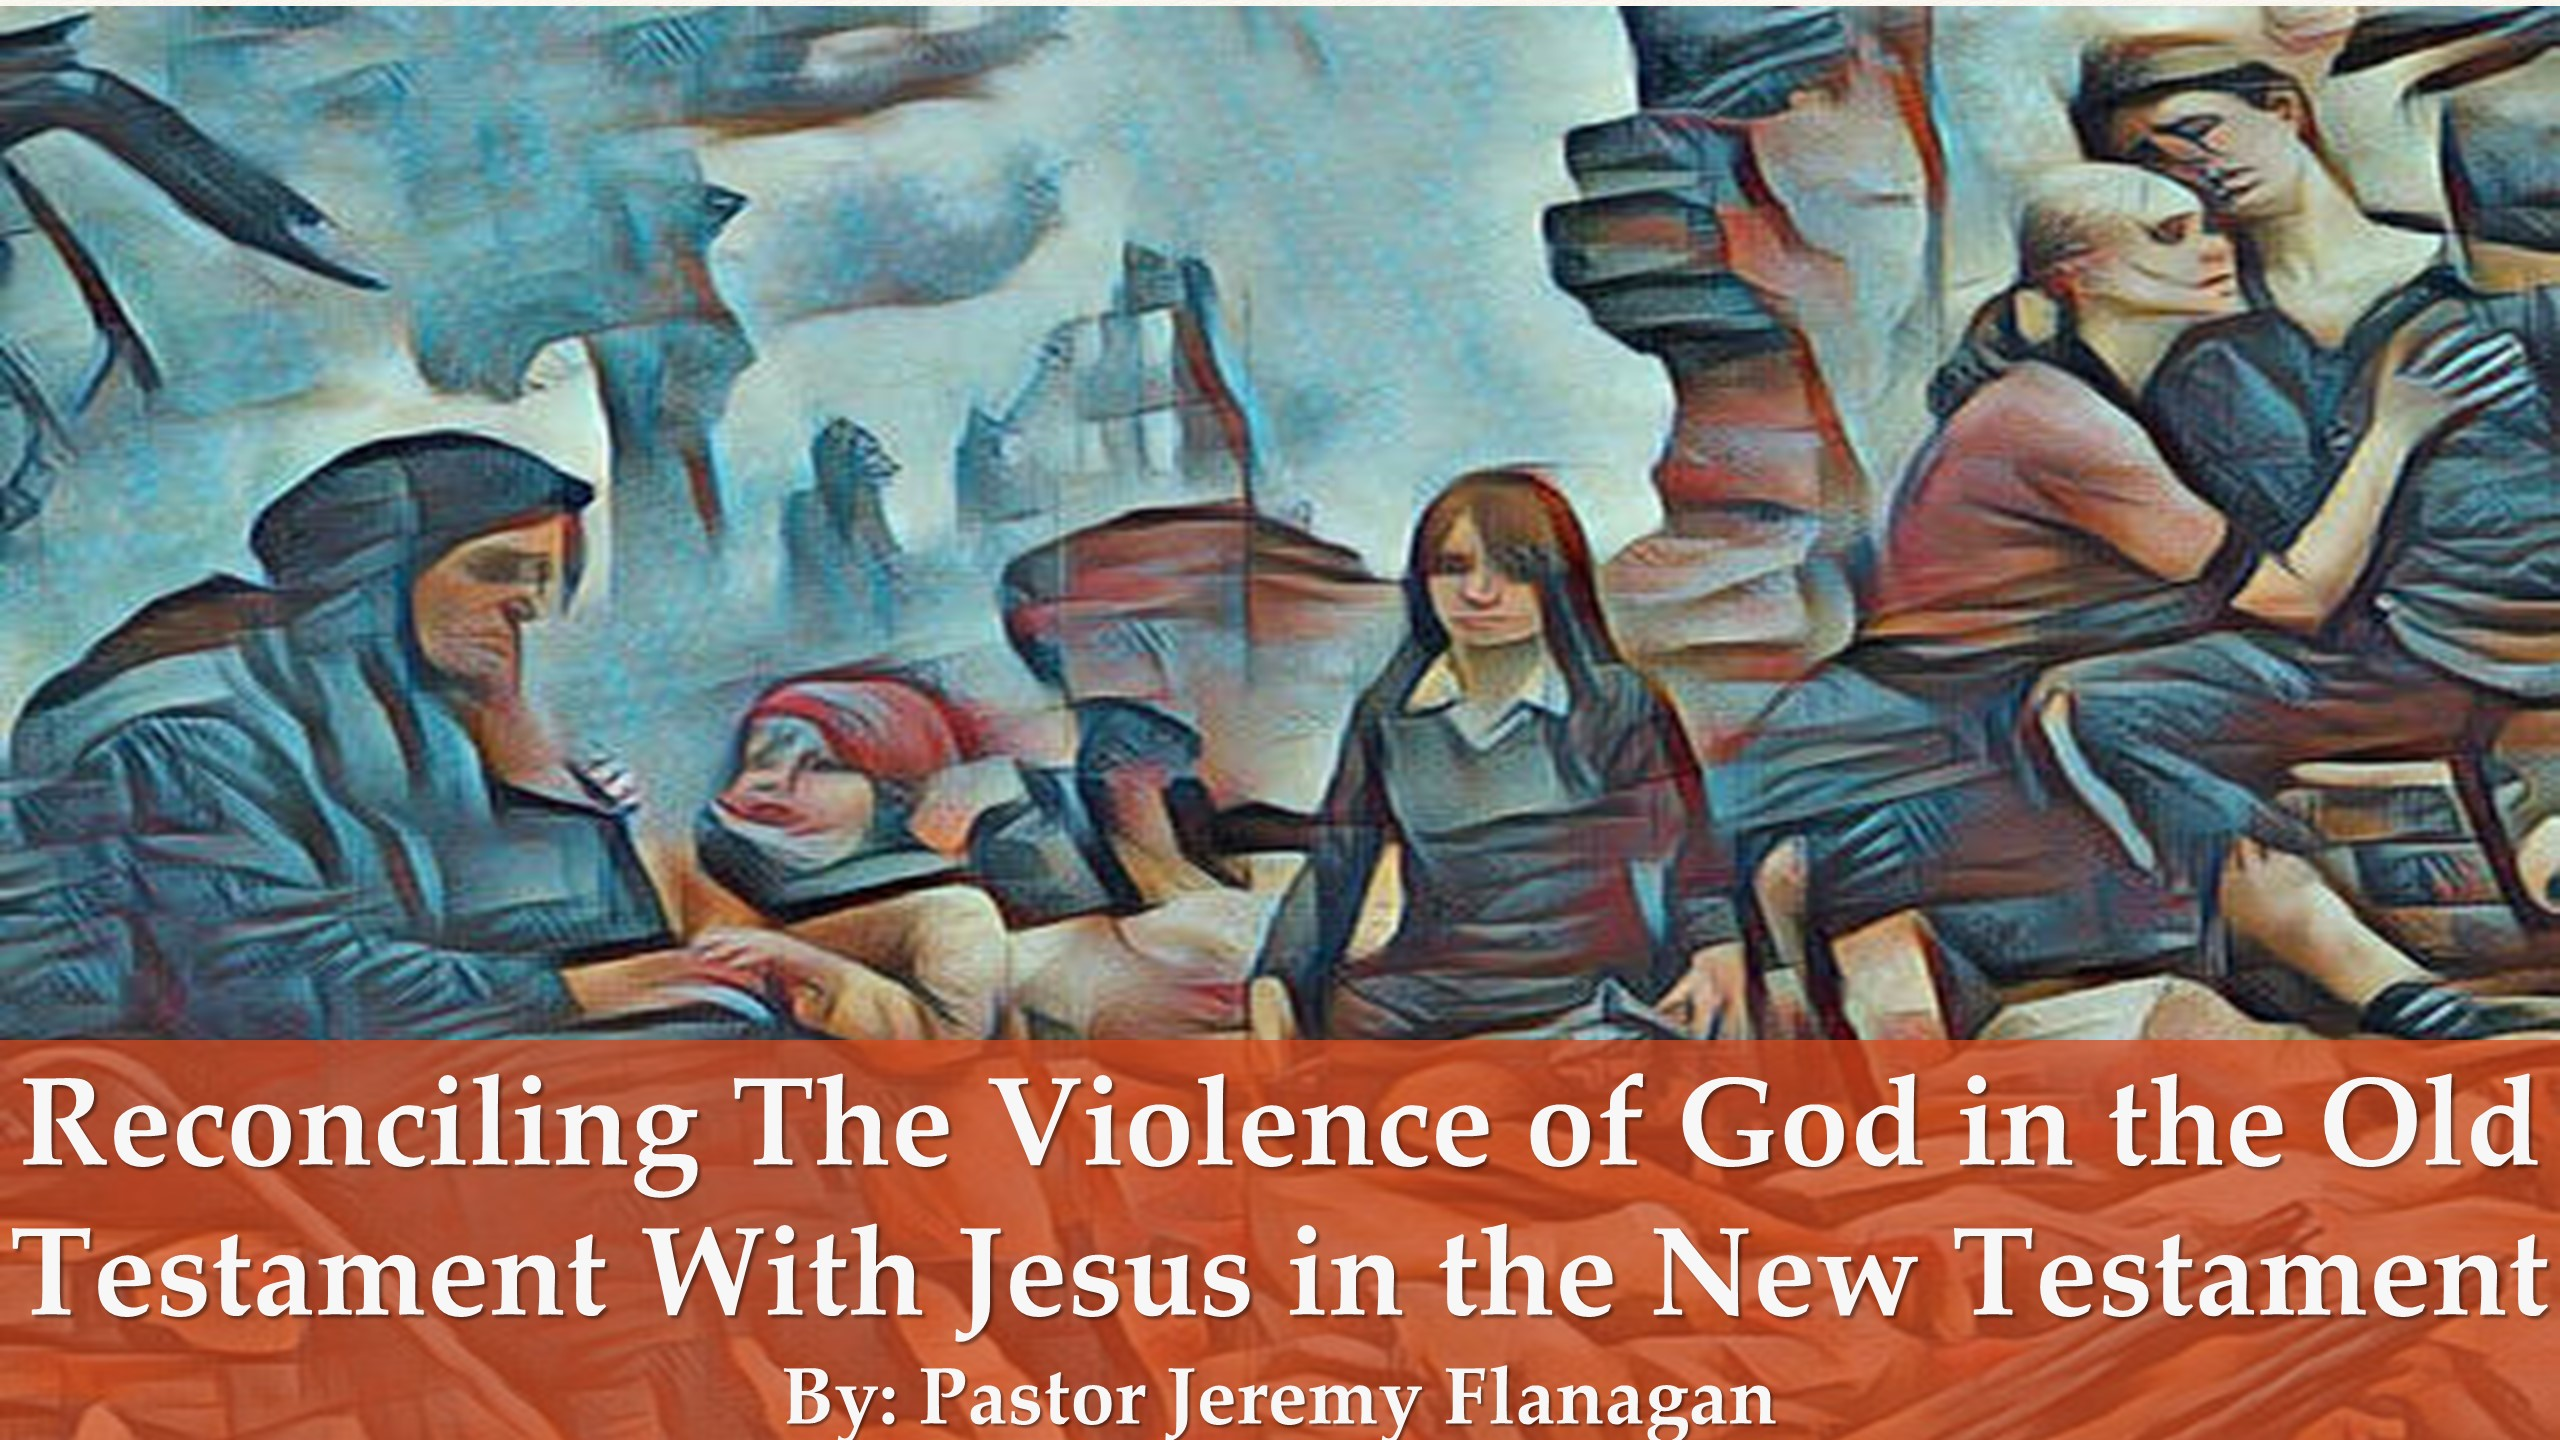 Reconciling The Violence of God In The Old Testament With Jesus In The New Testament